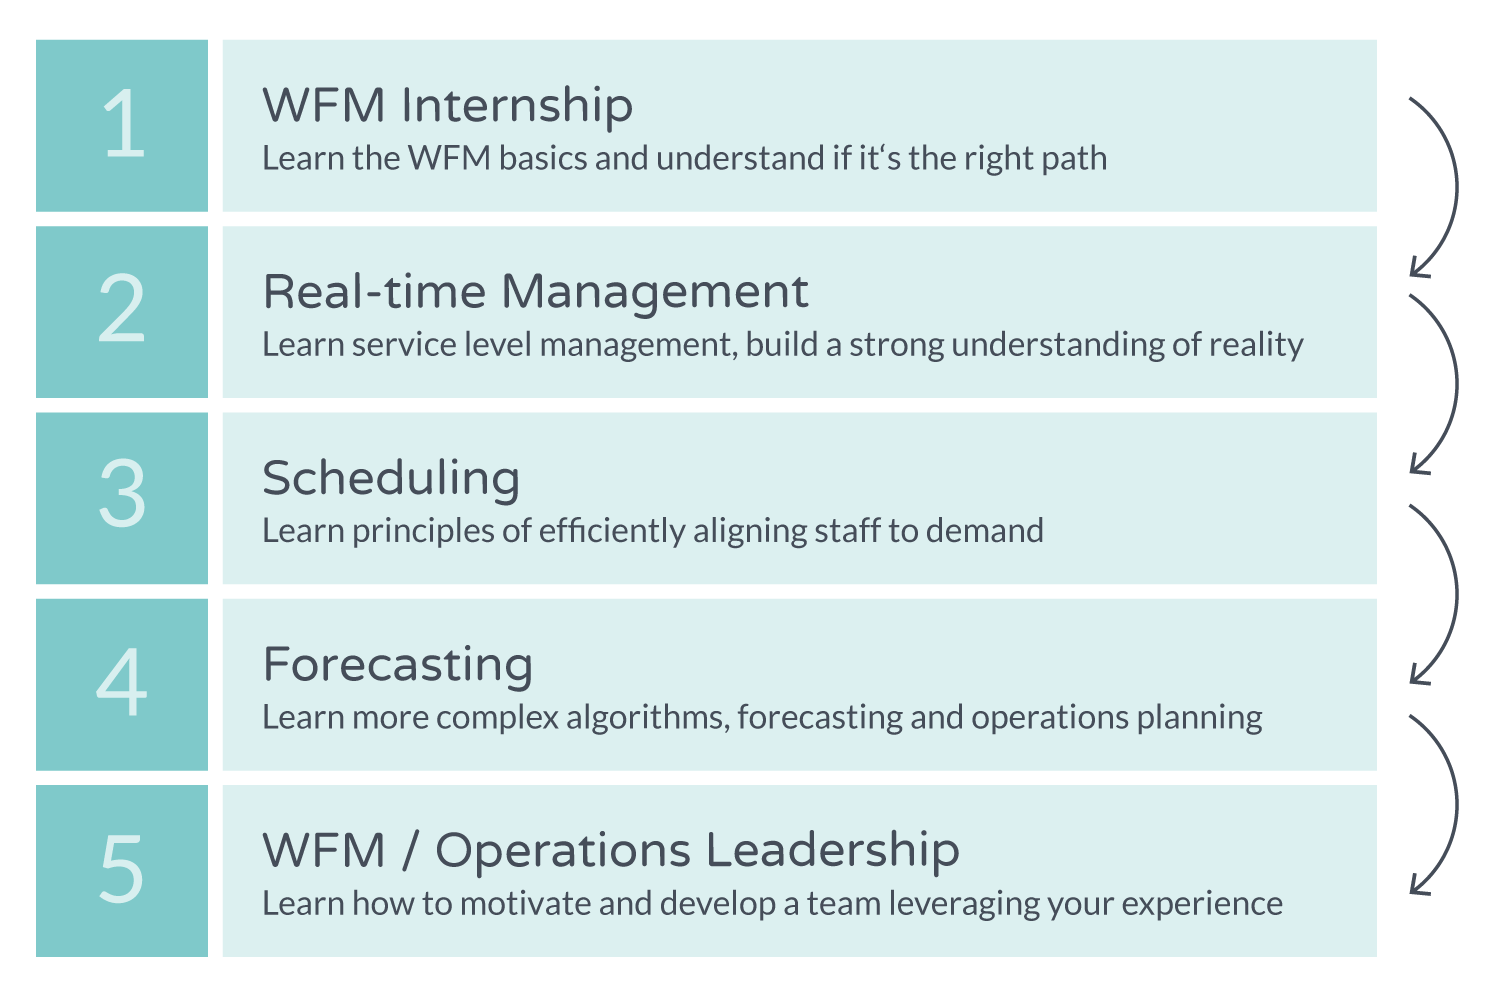 develop-a-strong-wfm-team-from-within-operations-3